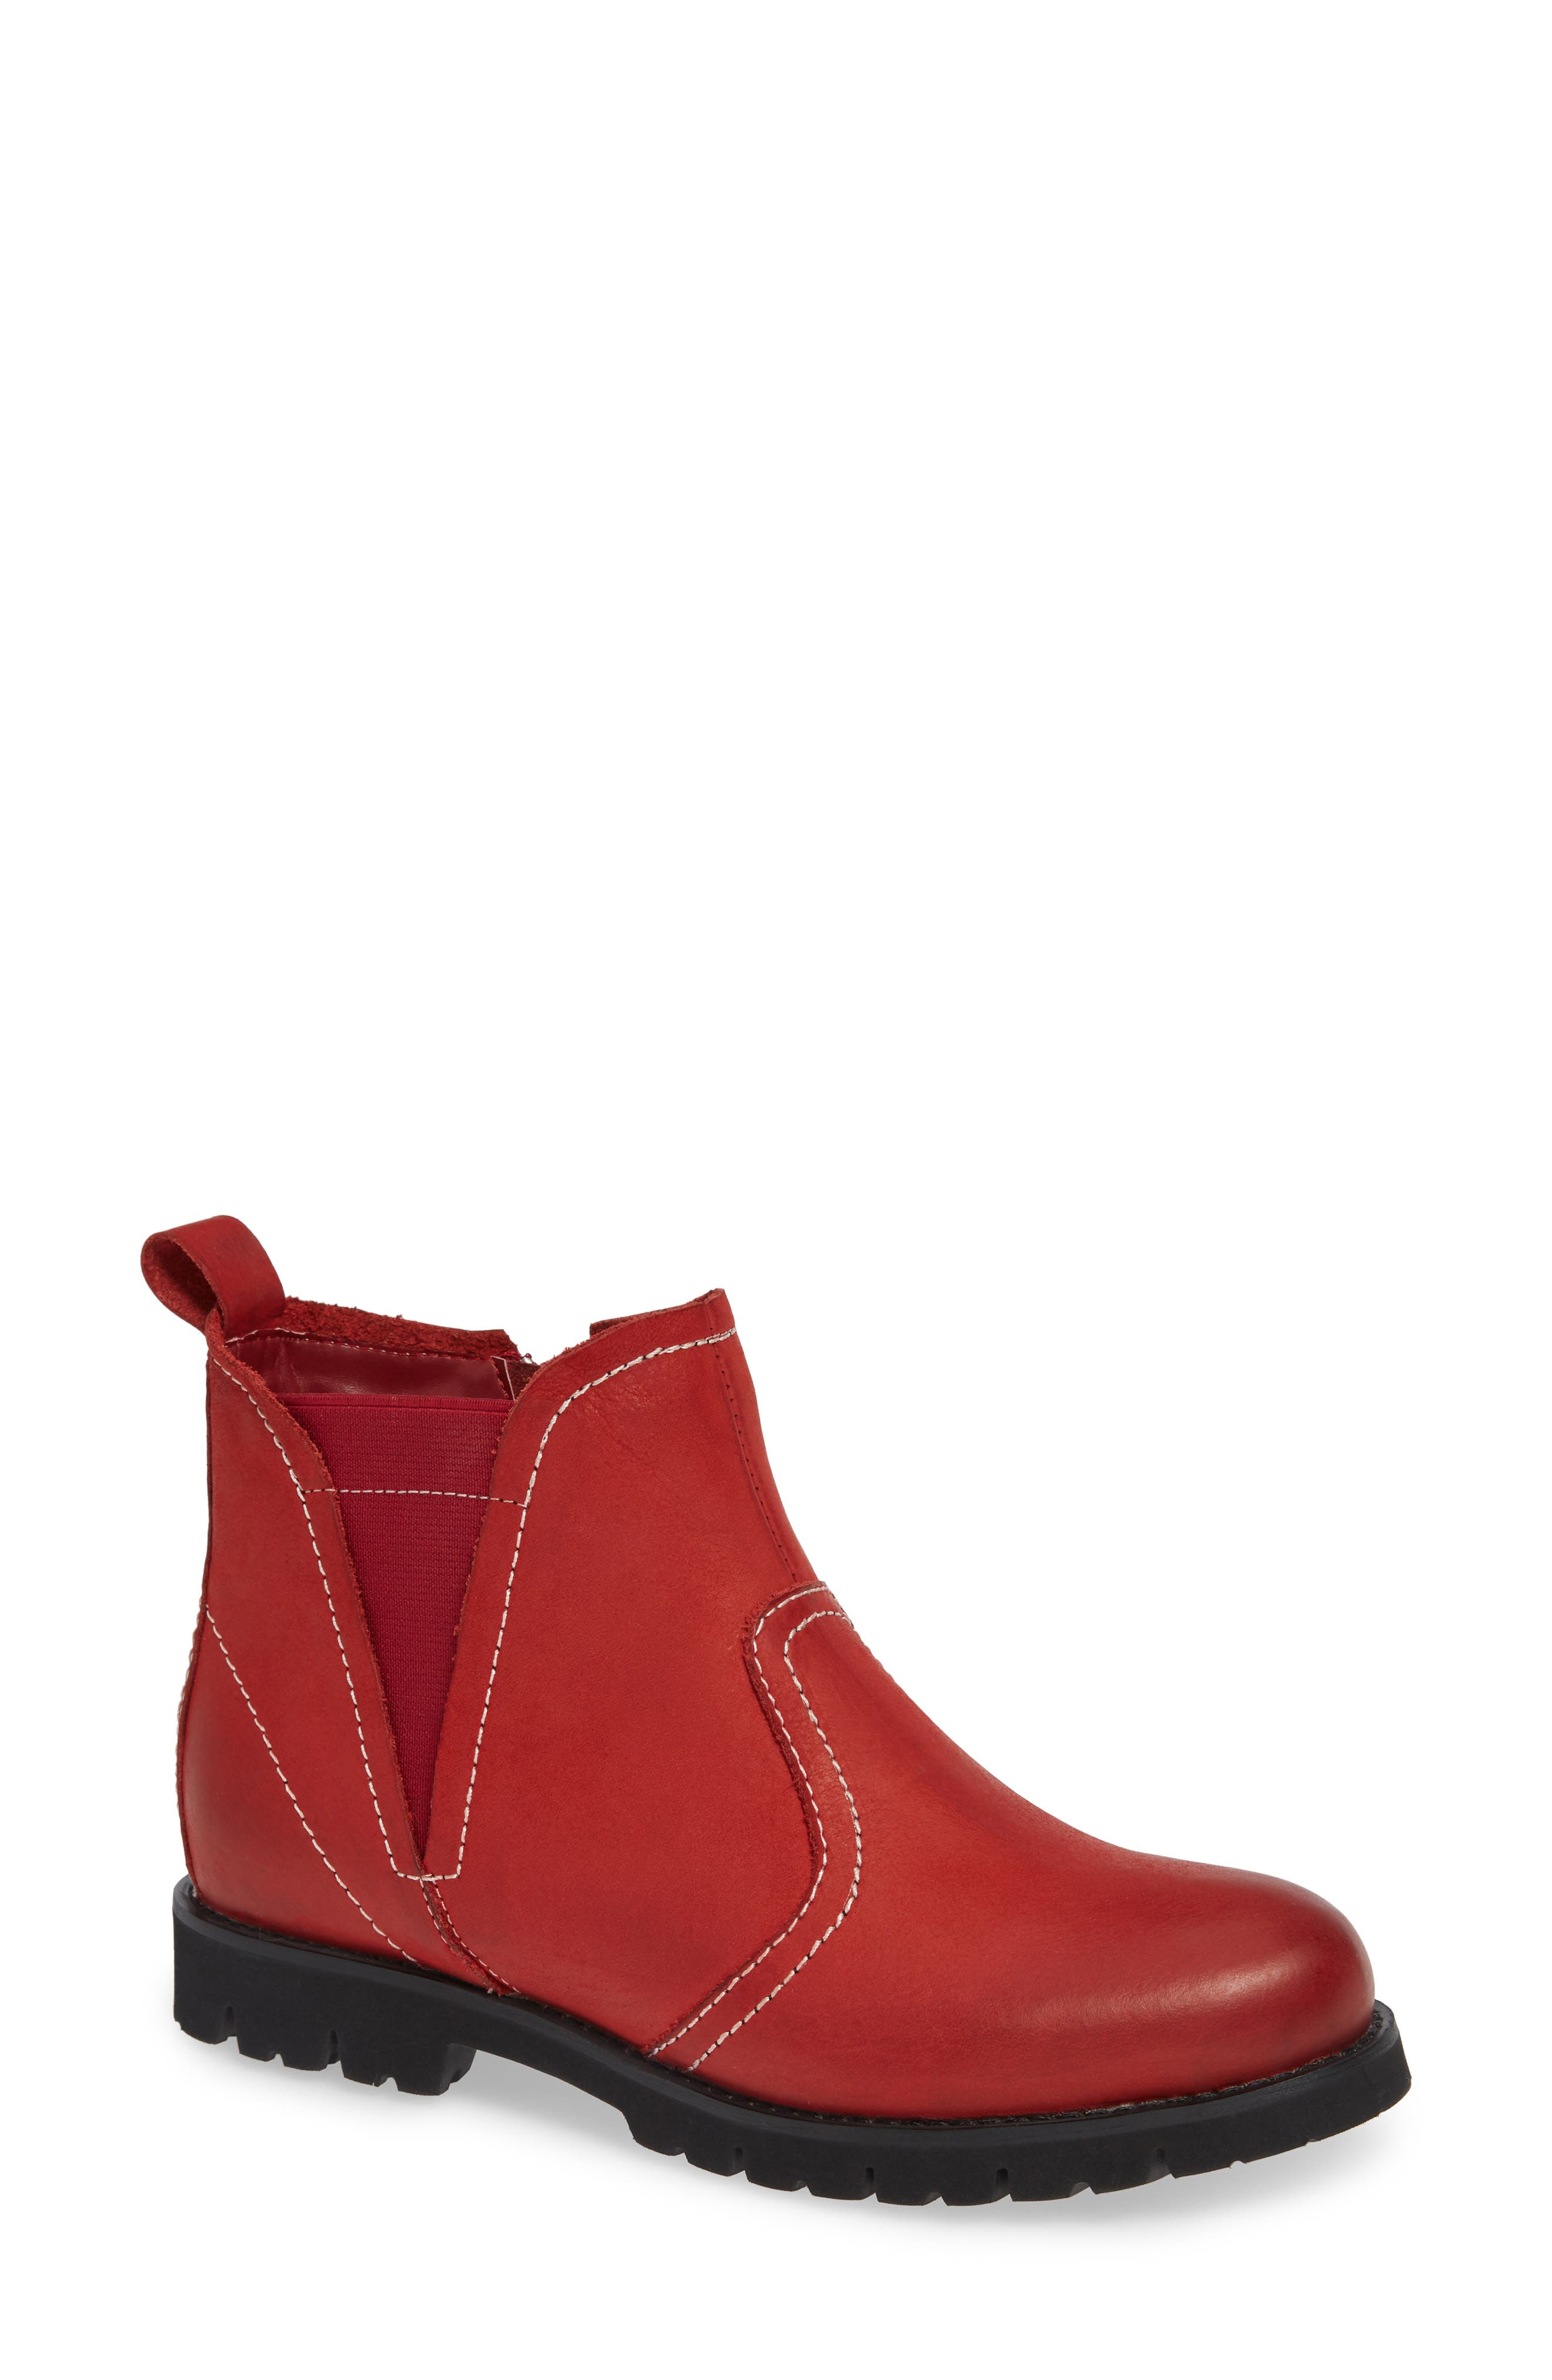 David Tate Reserve Lugged Bootie, Red